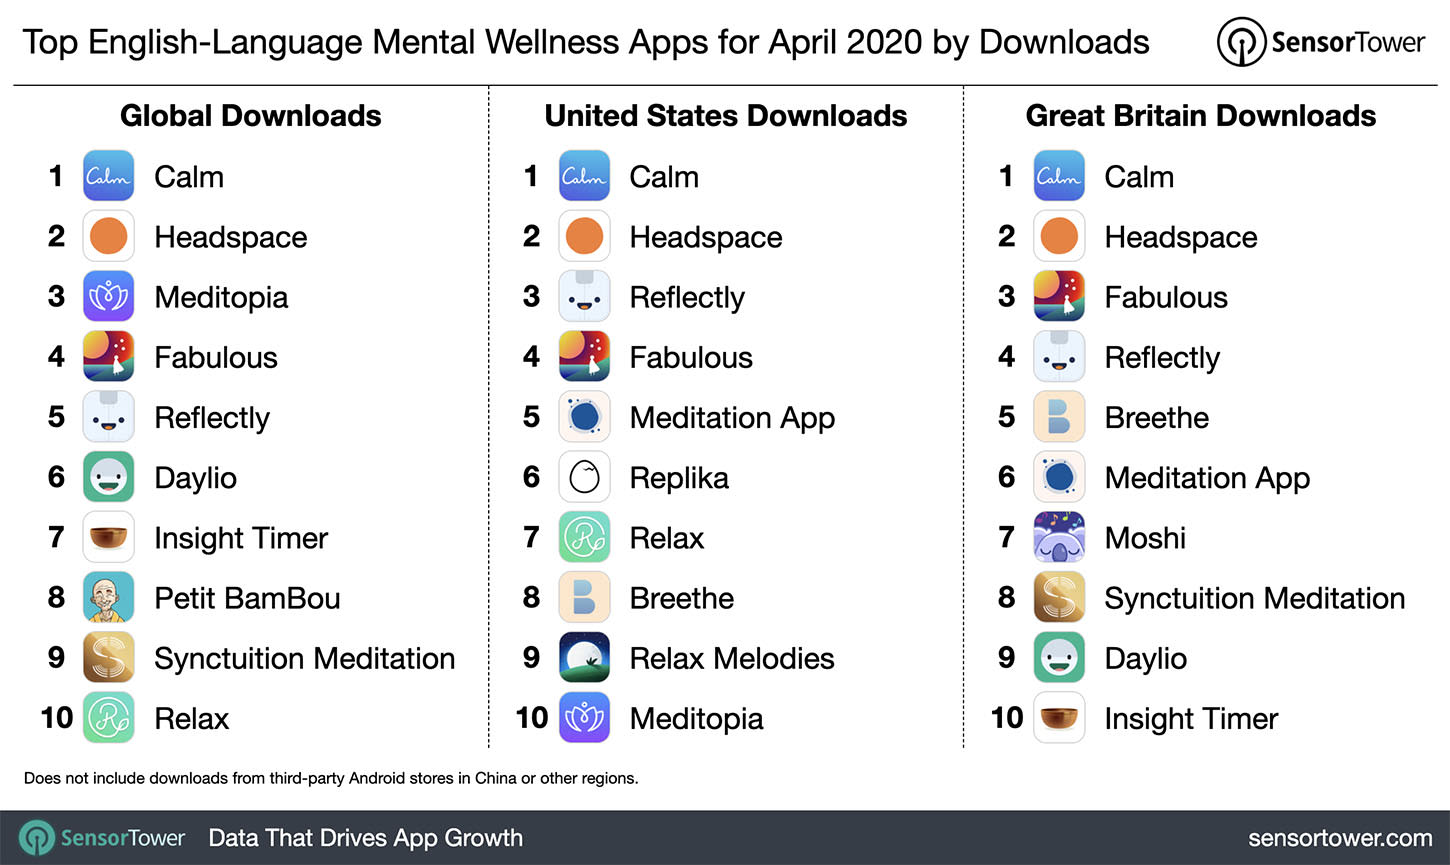 Top 10 English Language Mental Wellness Apps Worldwide by Downloads for April 2020